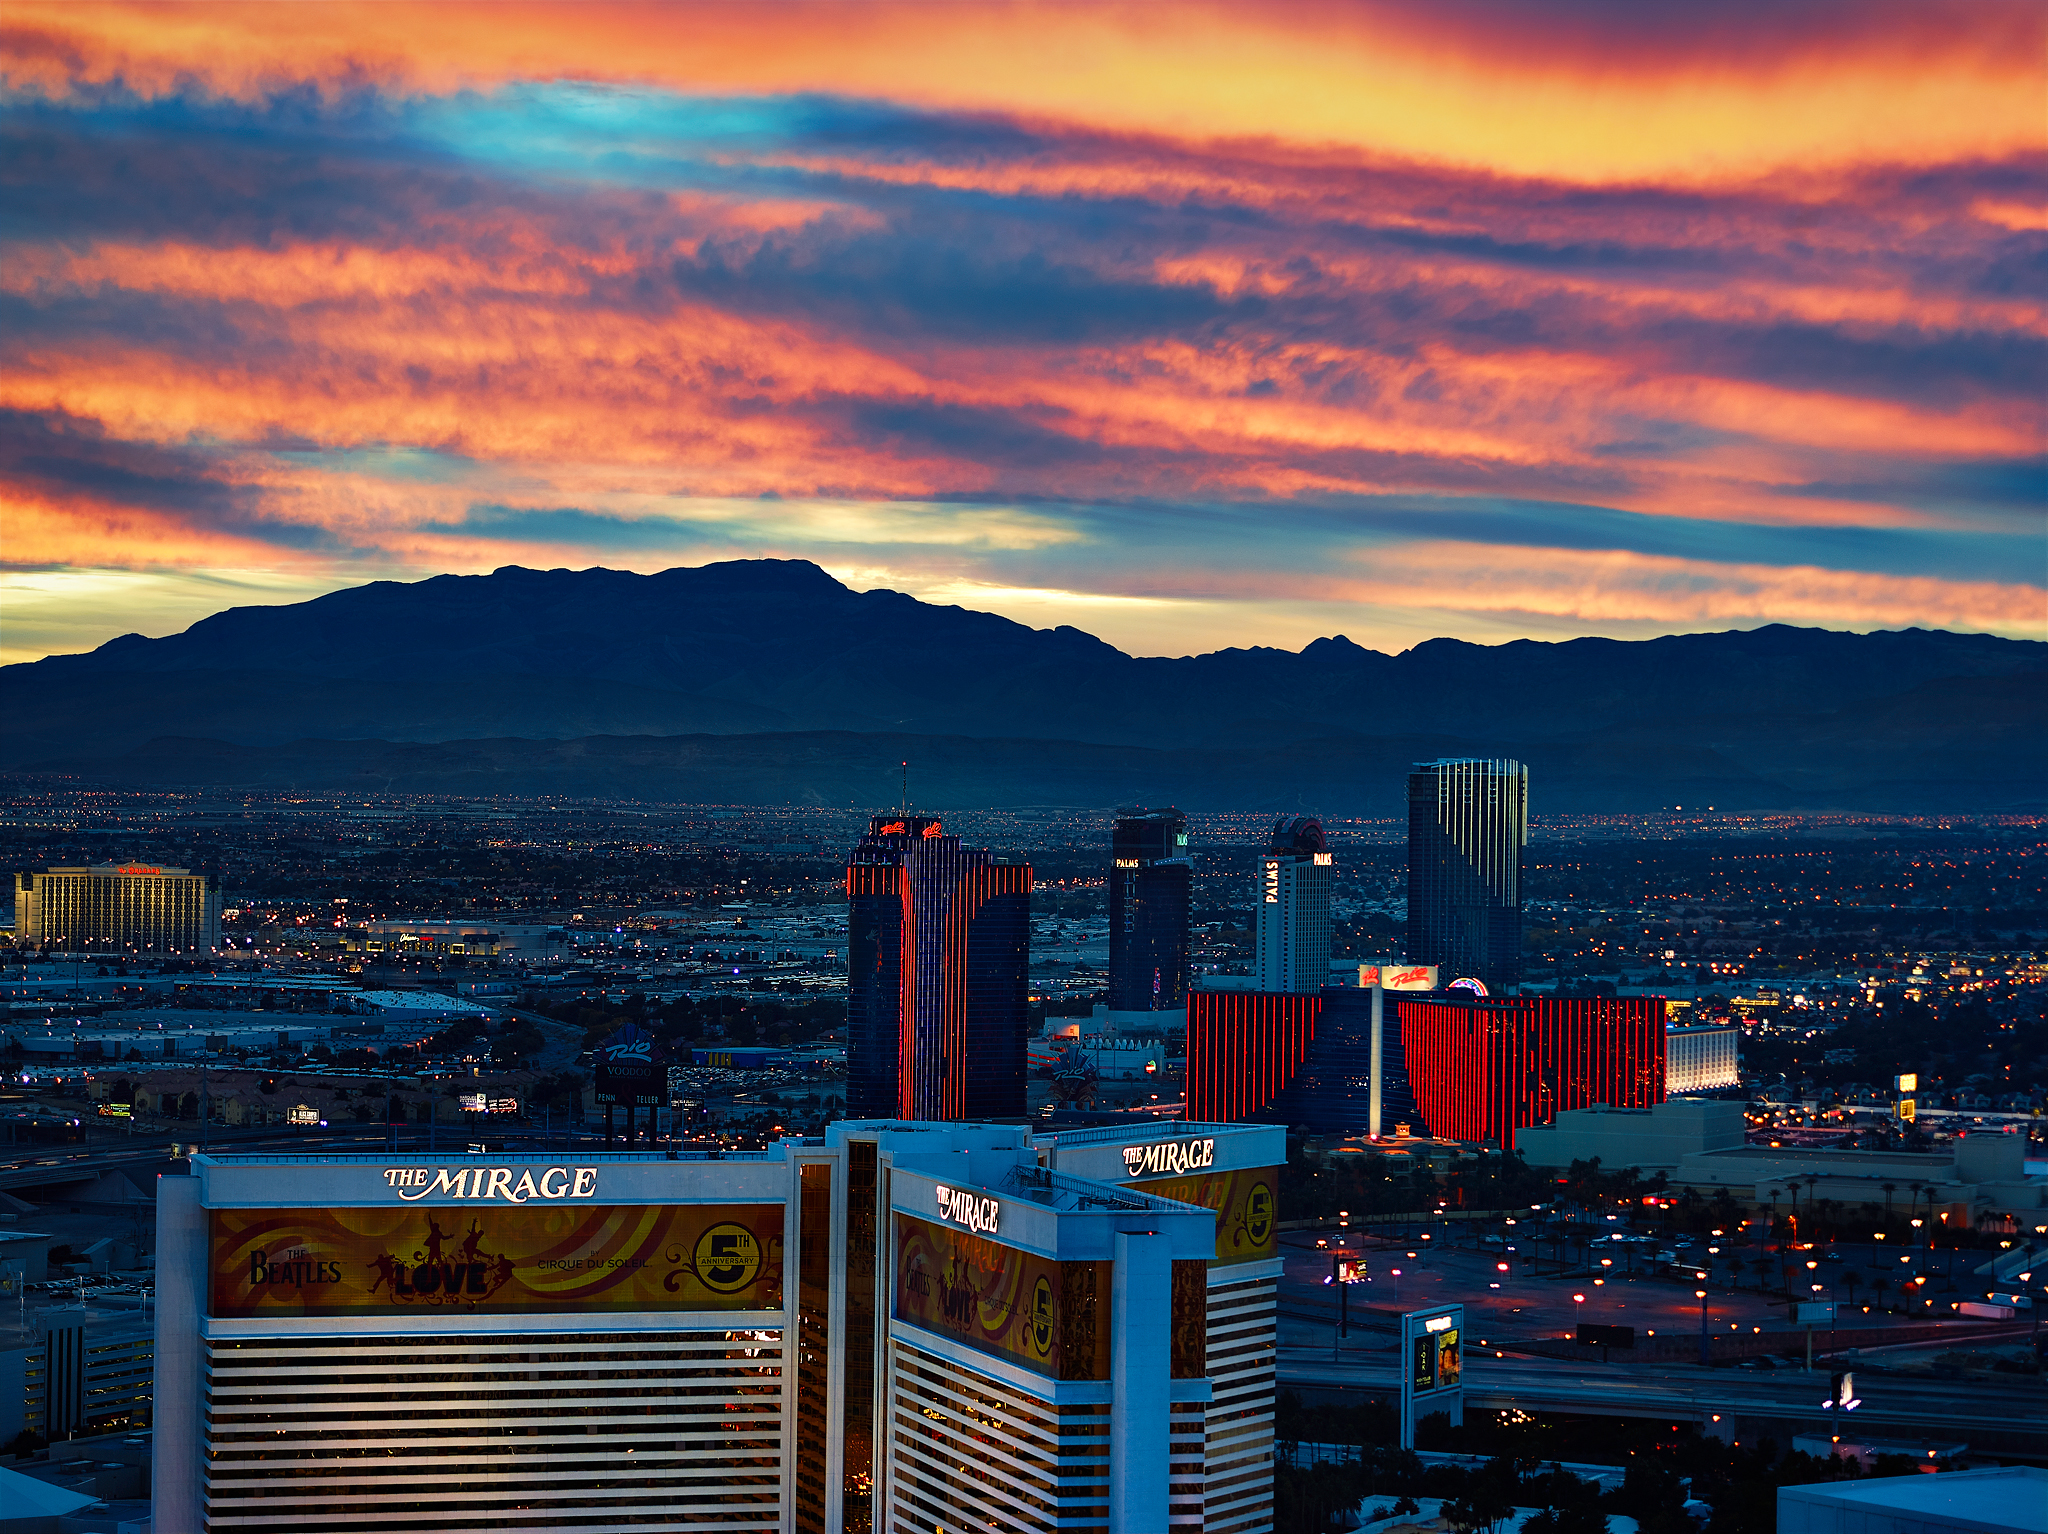 Las Vegas Sunset by Copyright Peter Adams. All rights reserved. Photo may not be used or distributed in any way without prior writen approval..